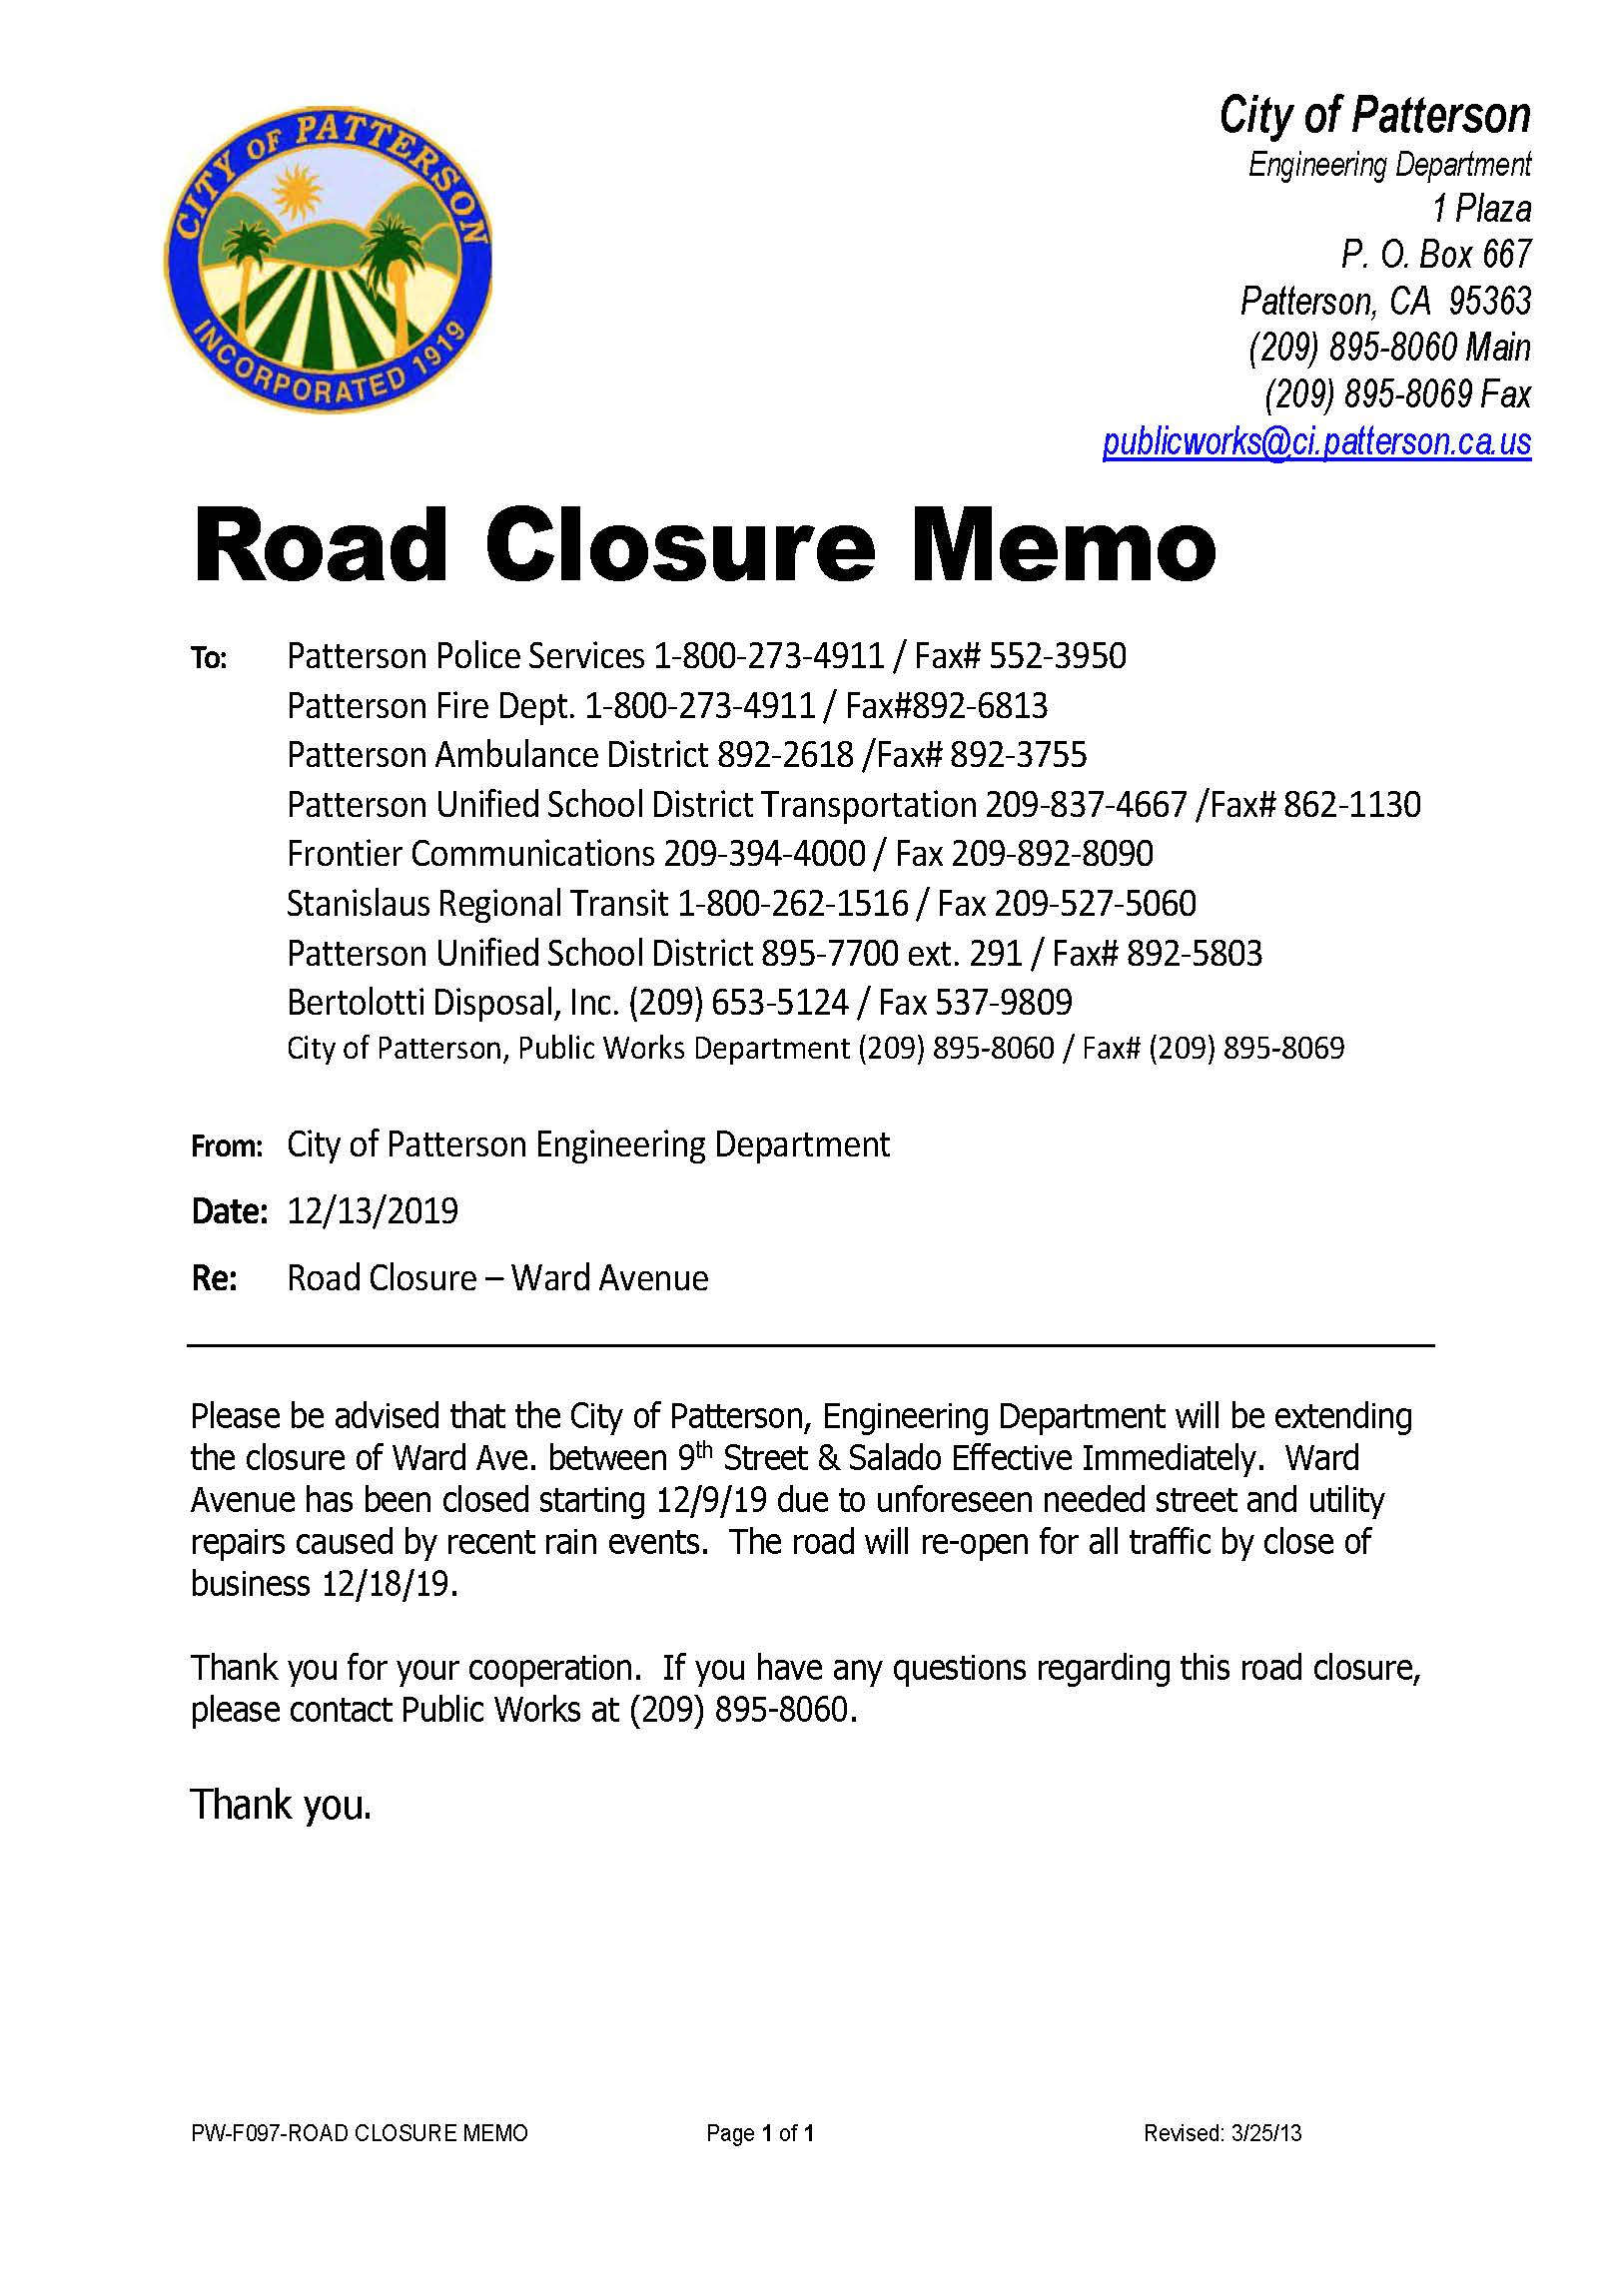 Road Closure Ward Avenue ending 12-18-19